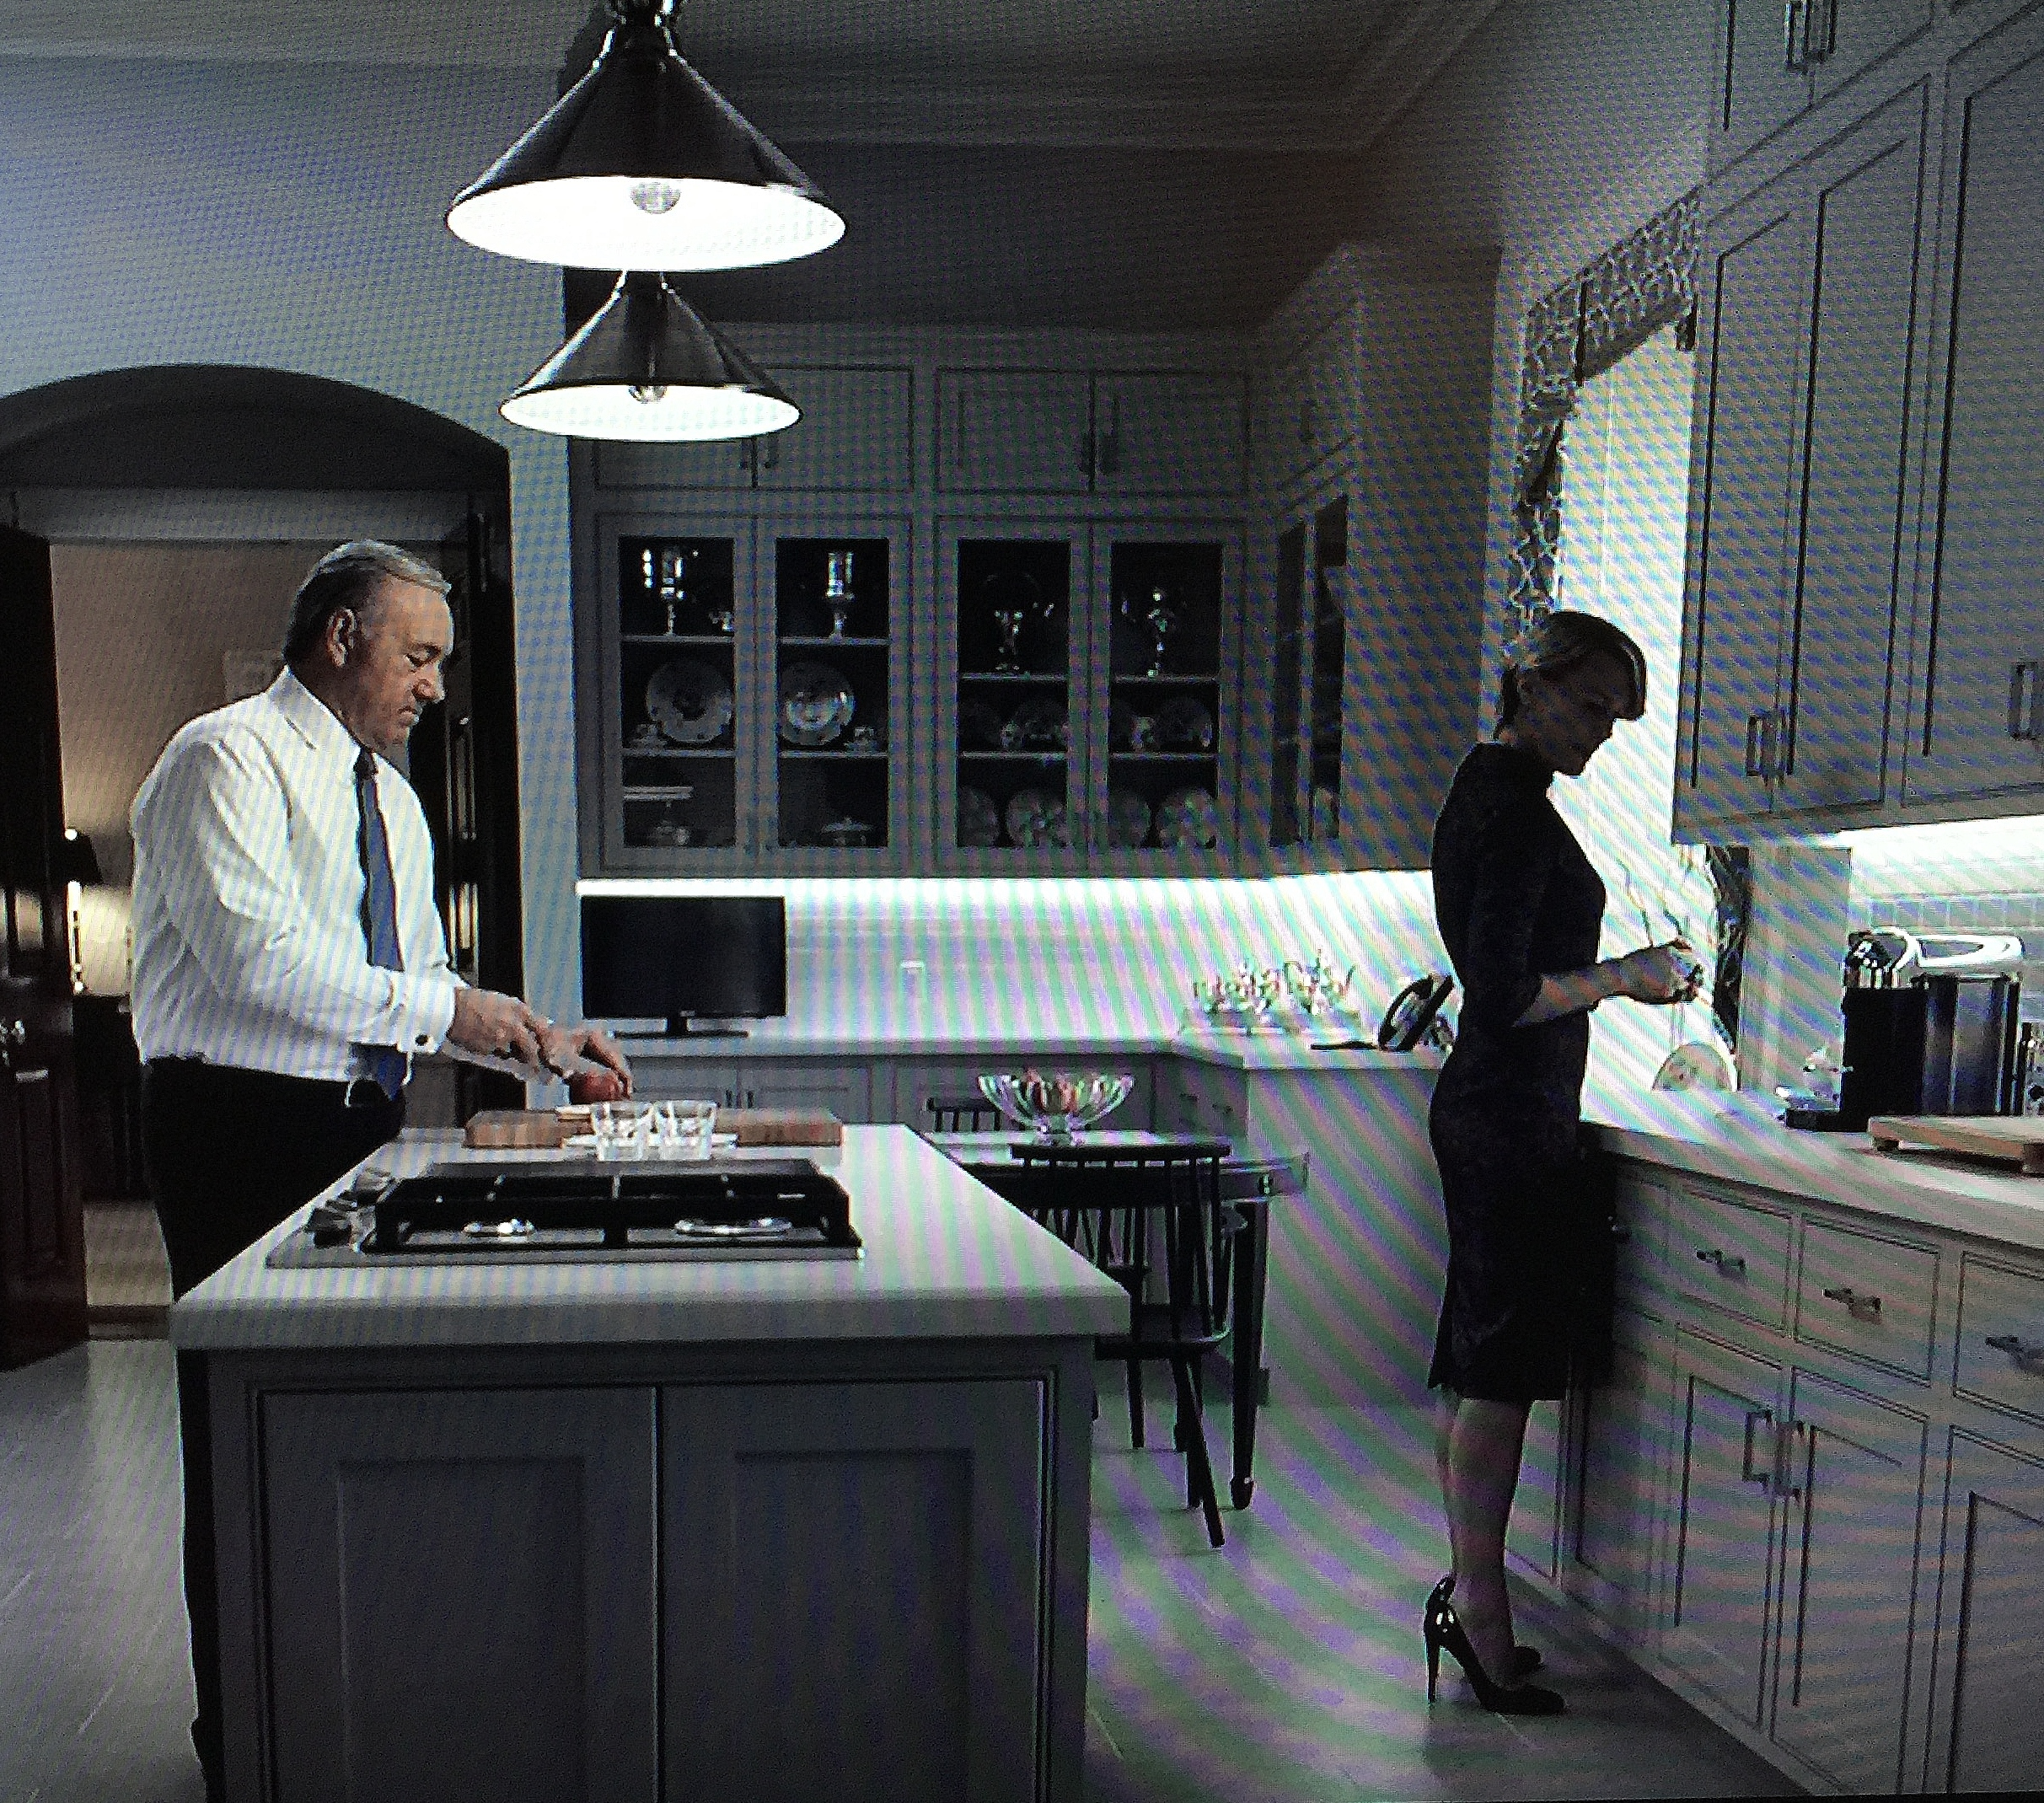 House Of Cards Answers Question Where Should A Backsplash End Designed